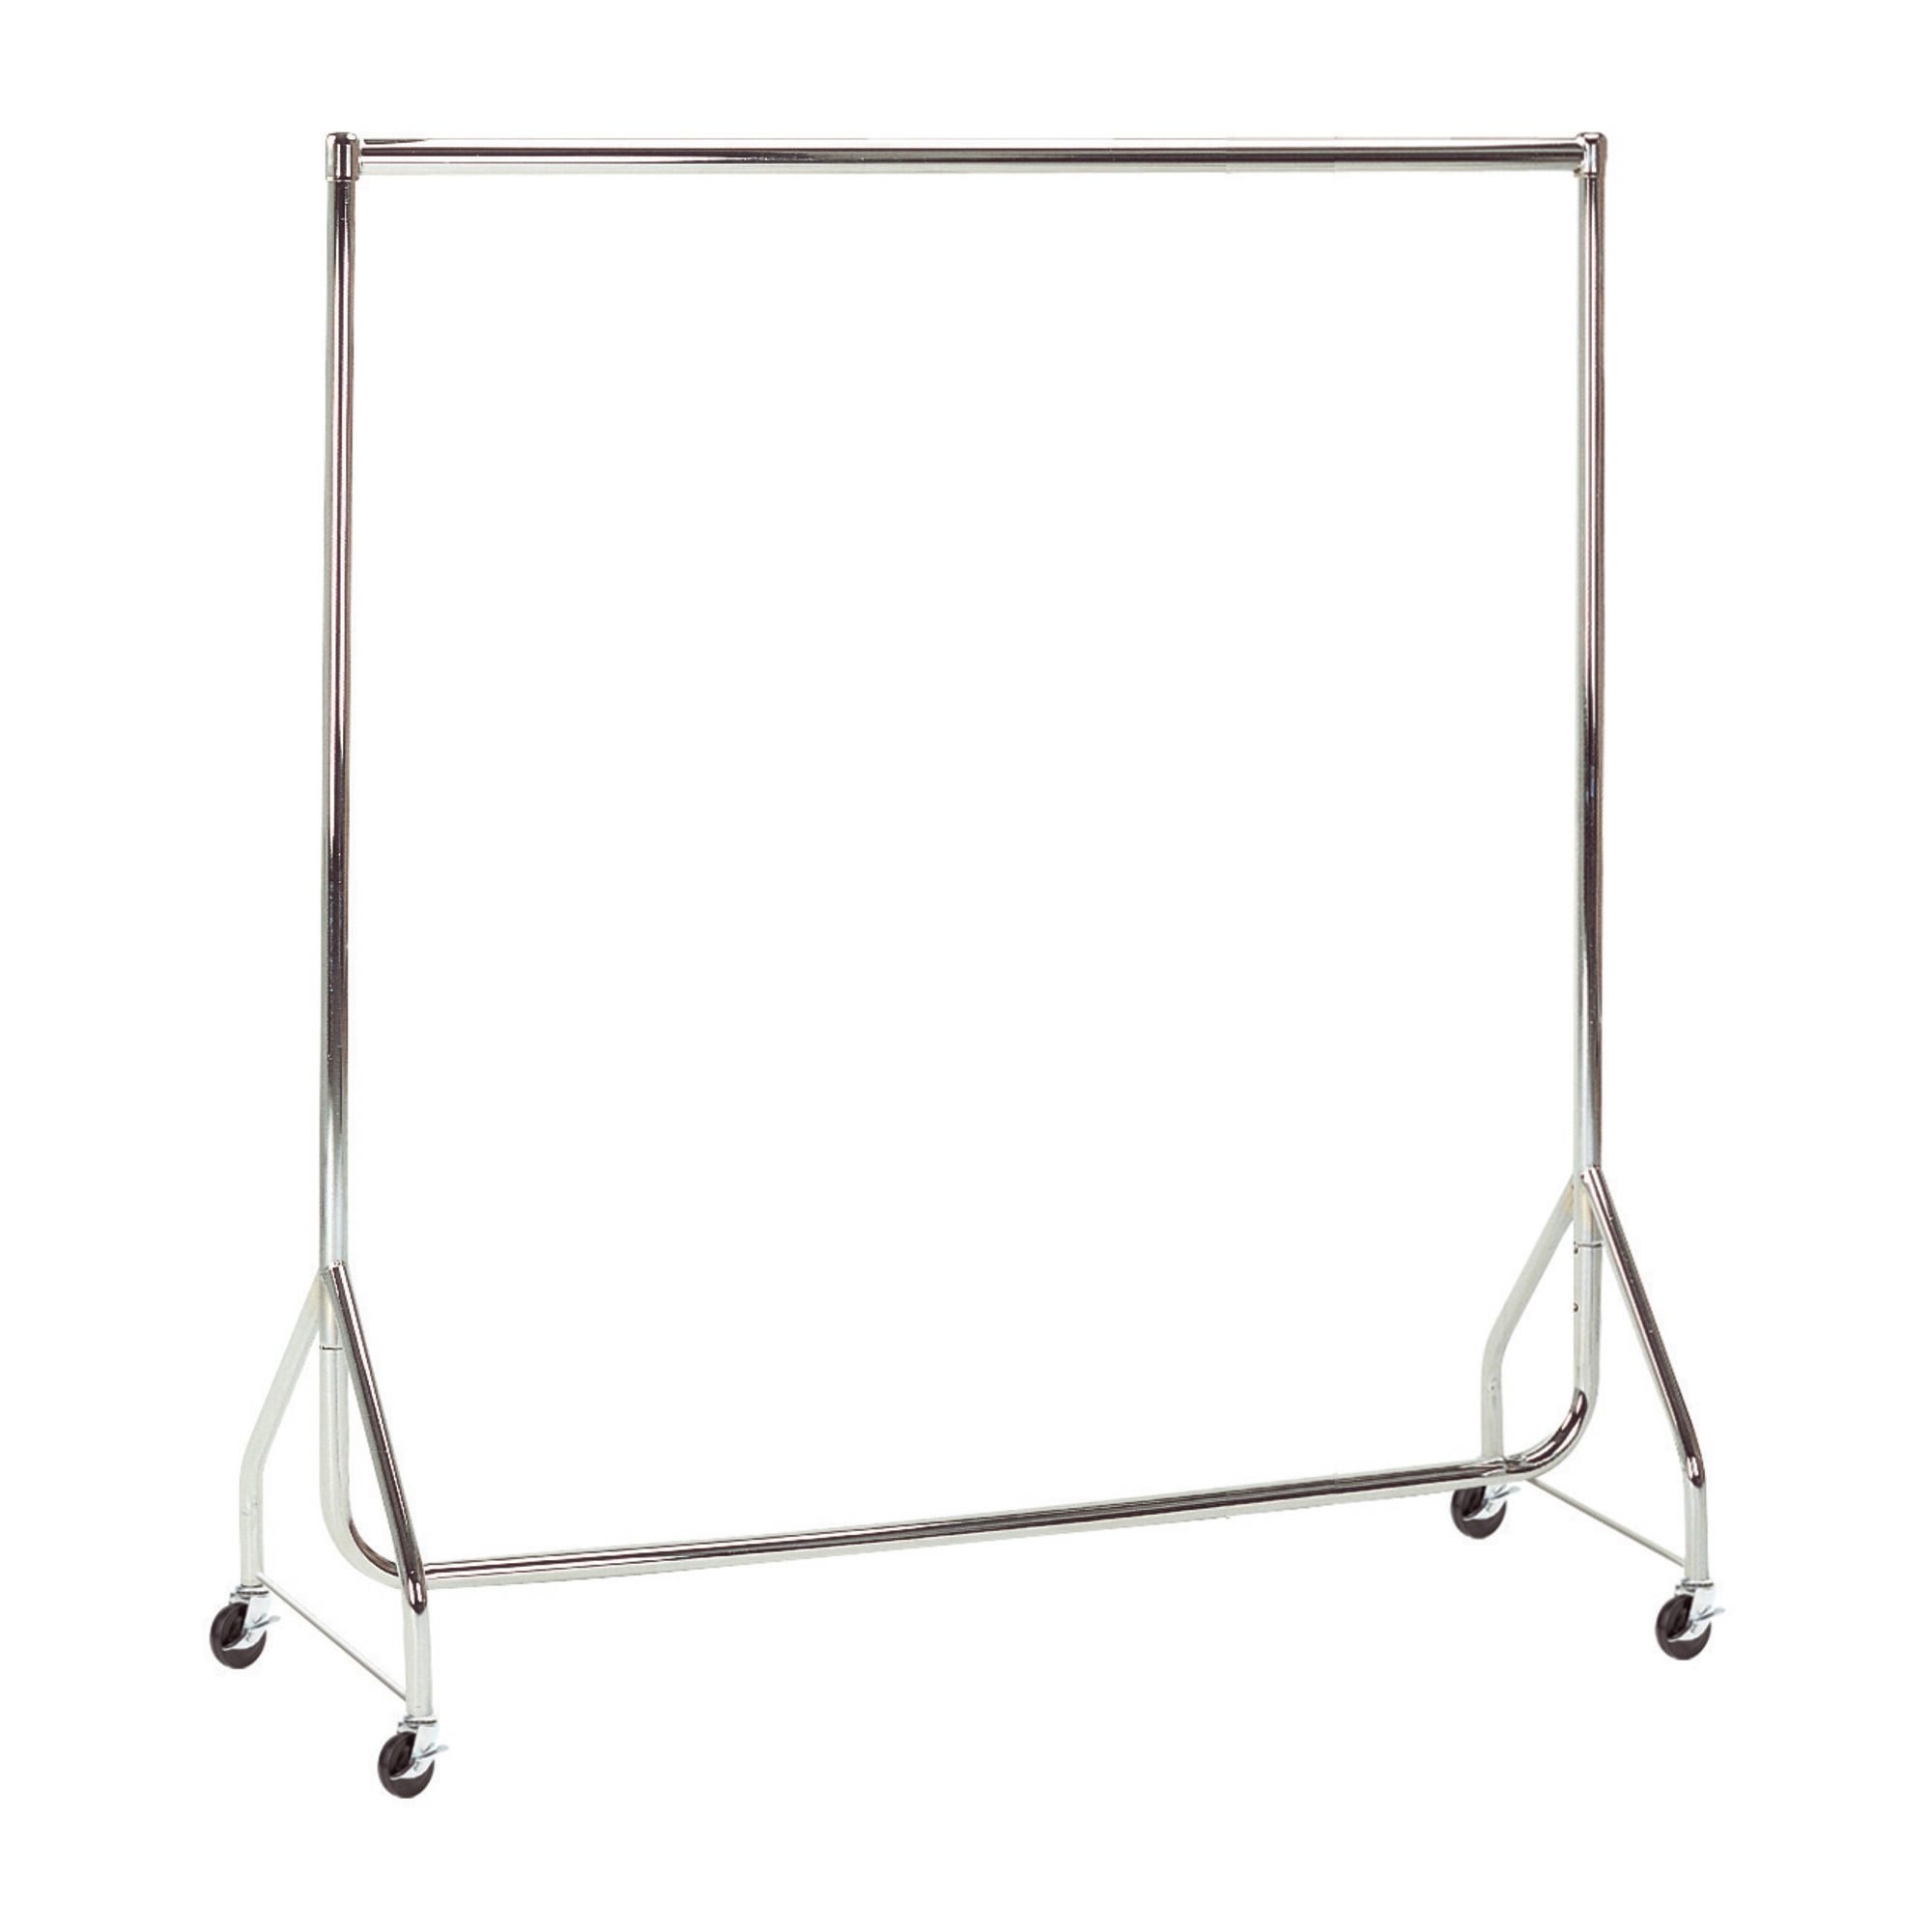 Chrome Heavy Duty Clothes Rails - L 4ft x H 5ft